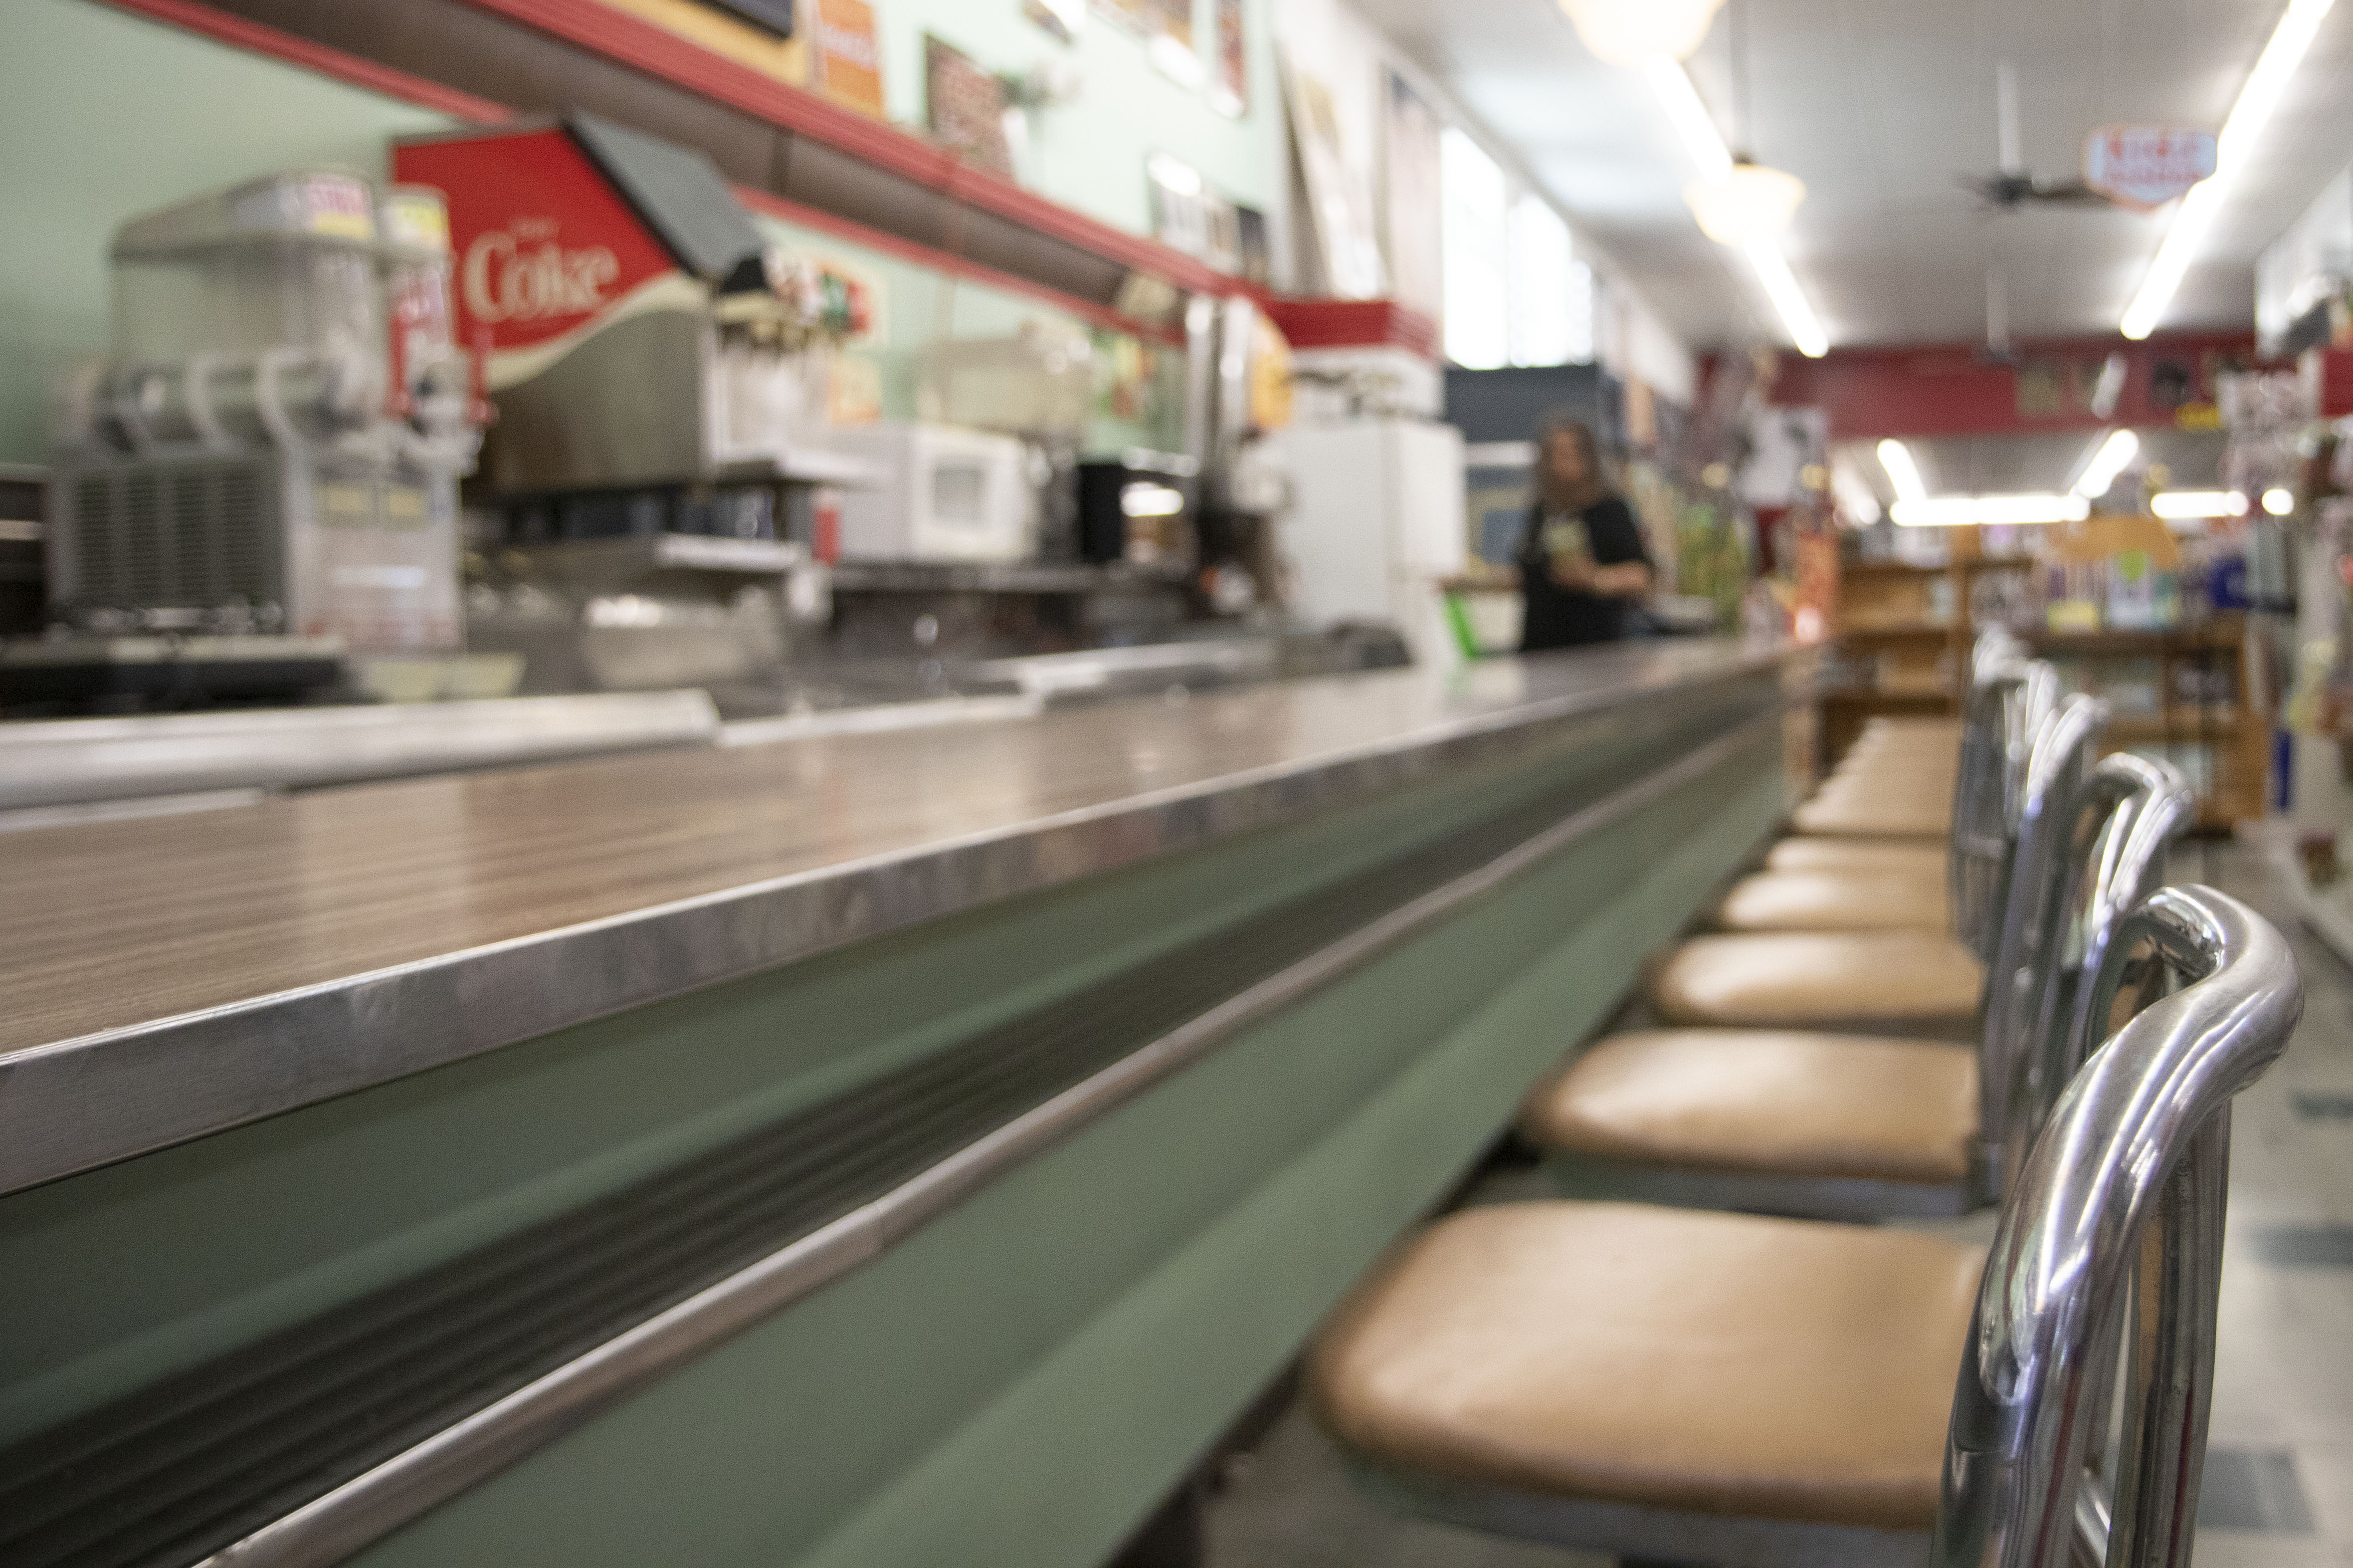 Peaches on Magazine plans to bring historic Woolworth's